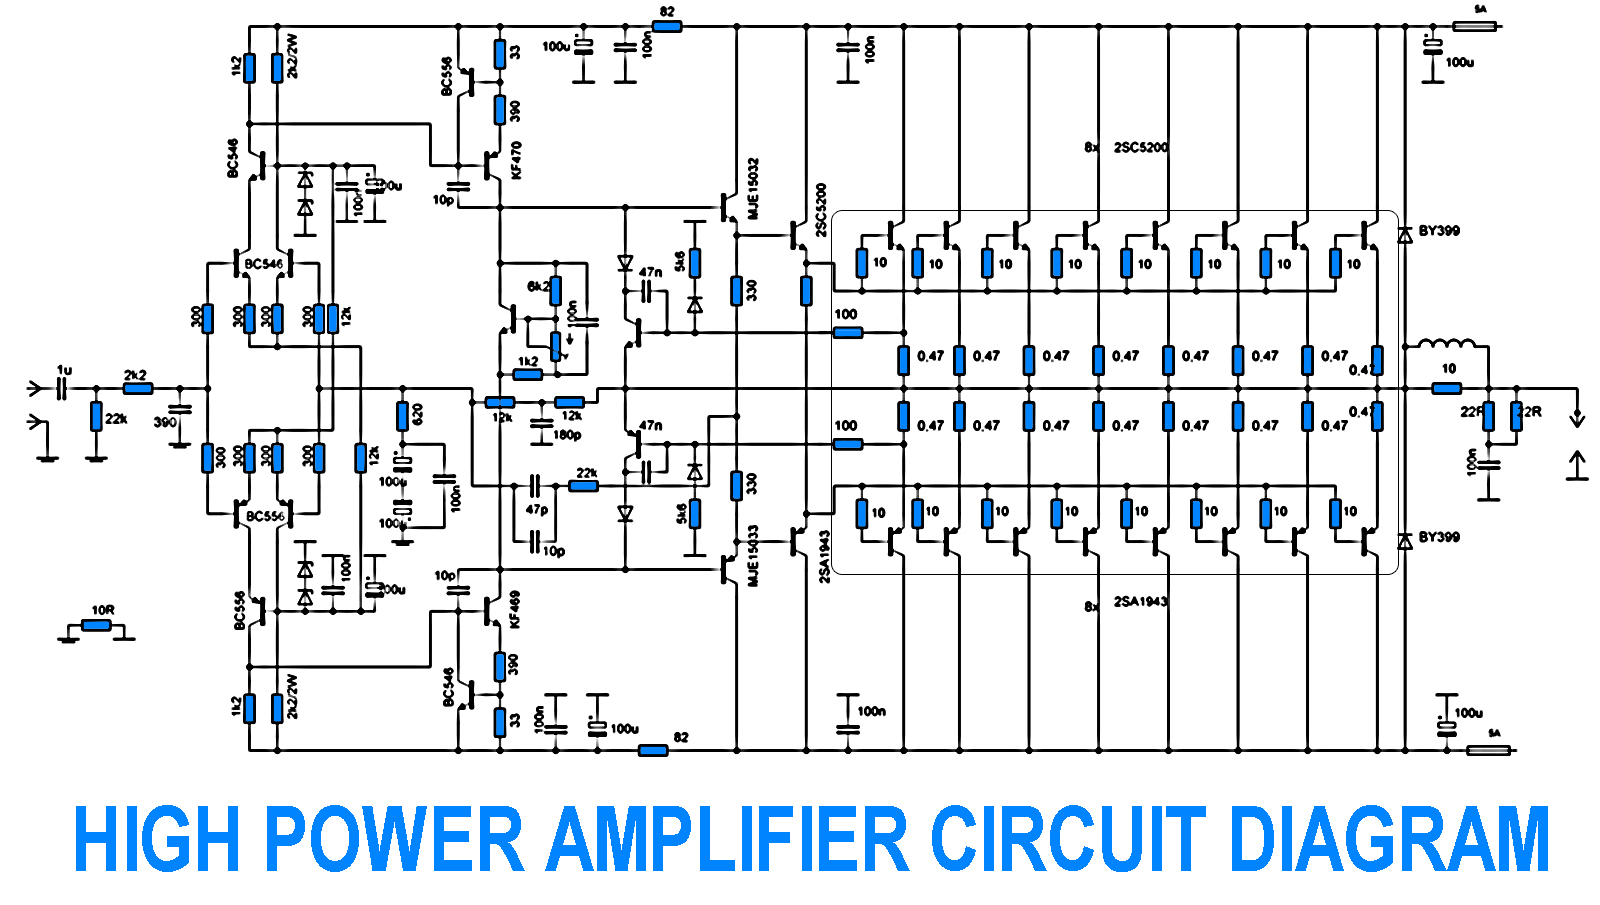 700w-power-amplifier-with-2sc5200.html